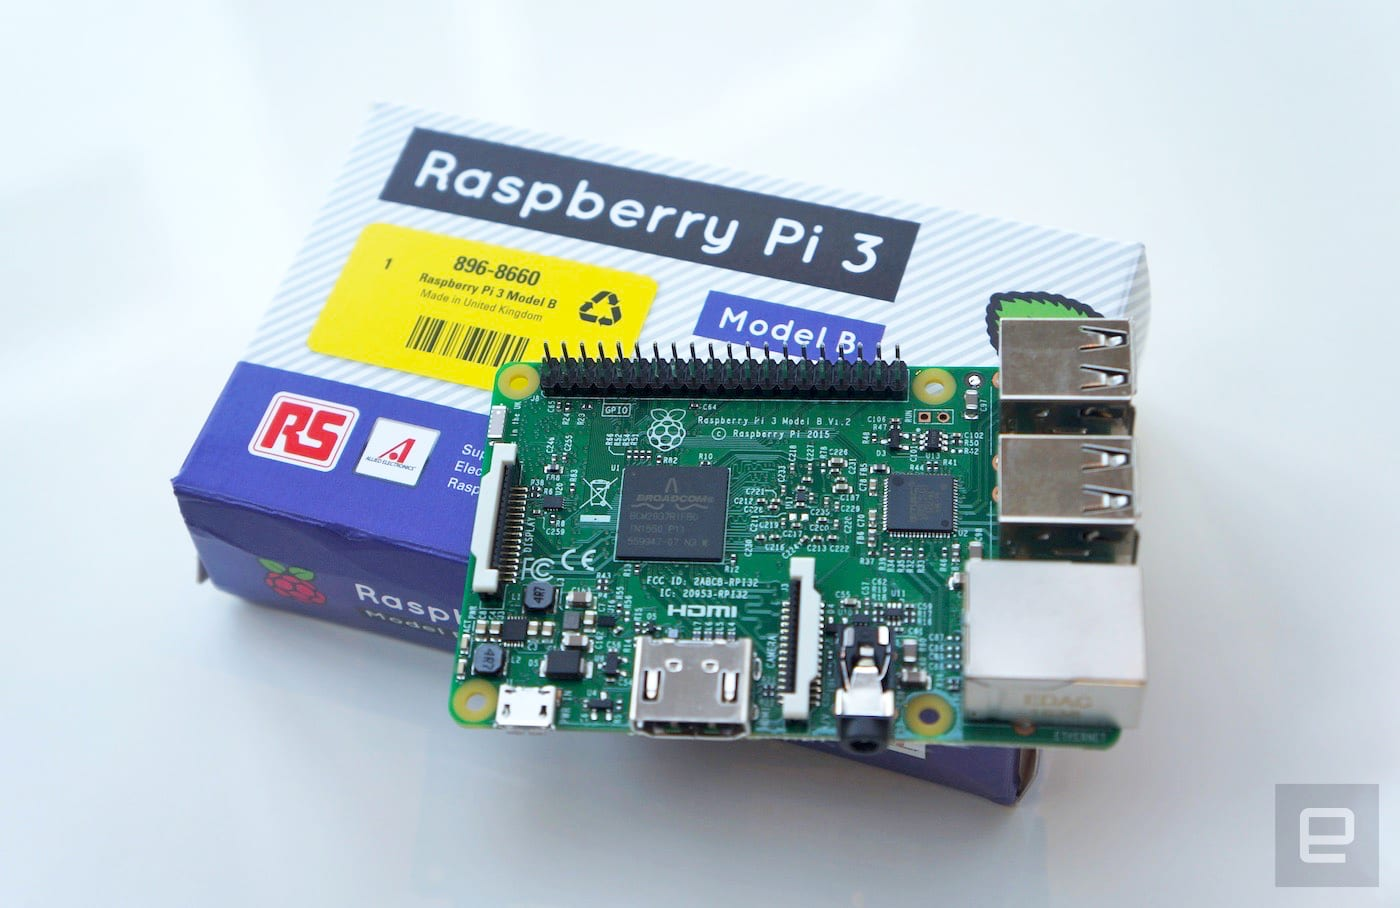 Raspberry Pi 3 has a 64-bit processor and built-in WiFi